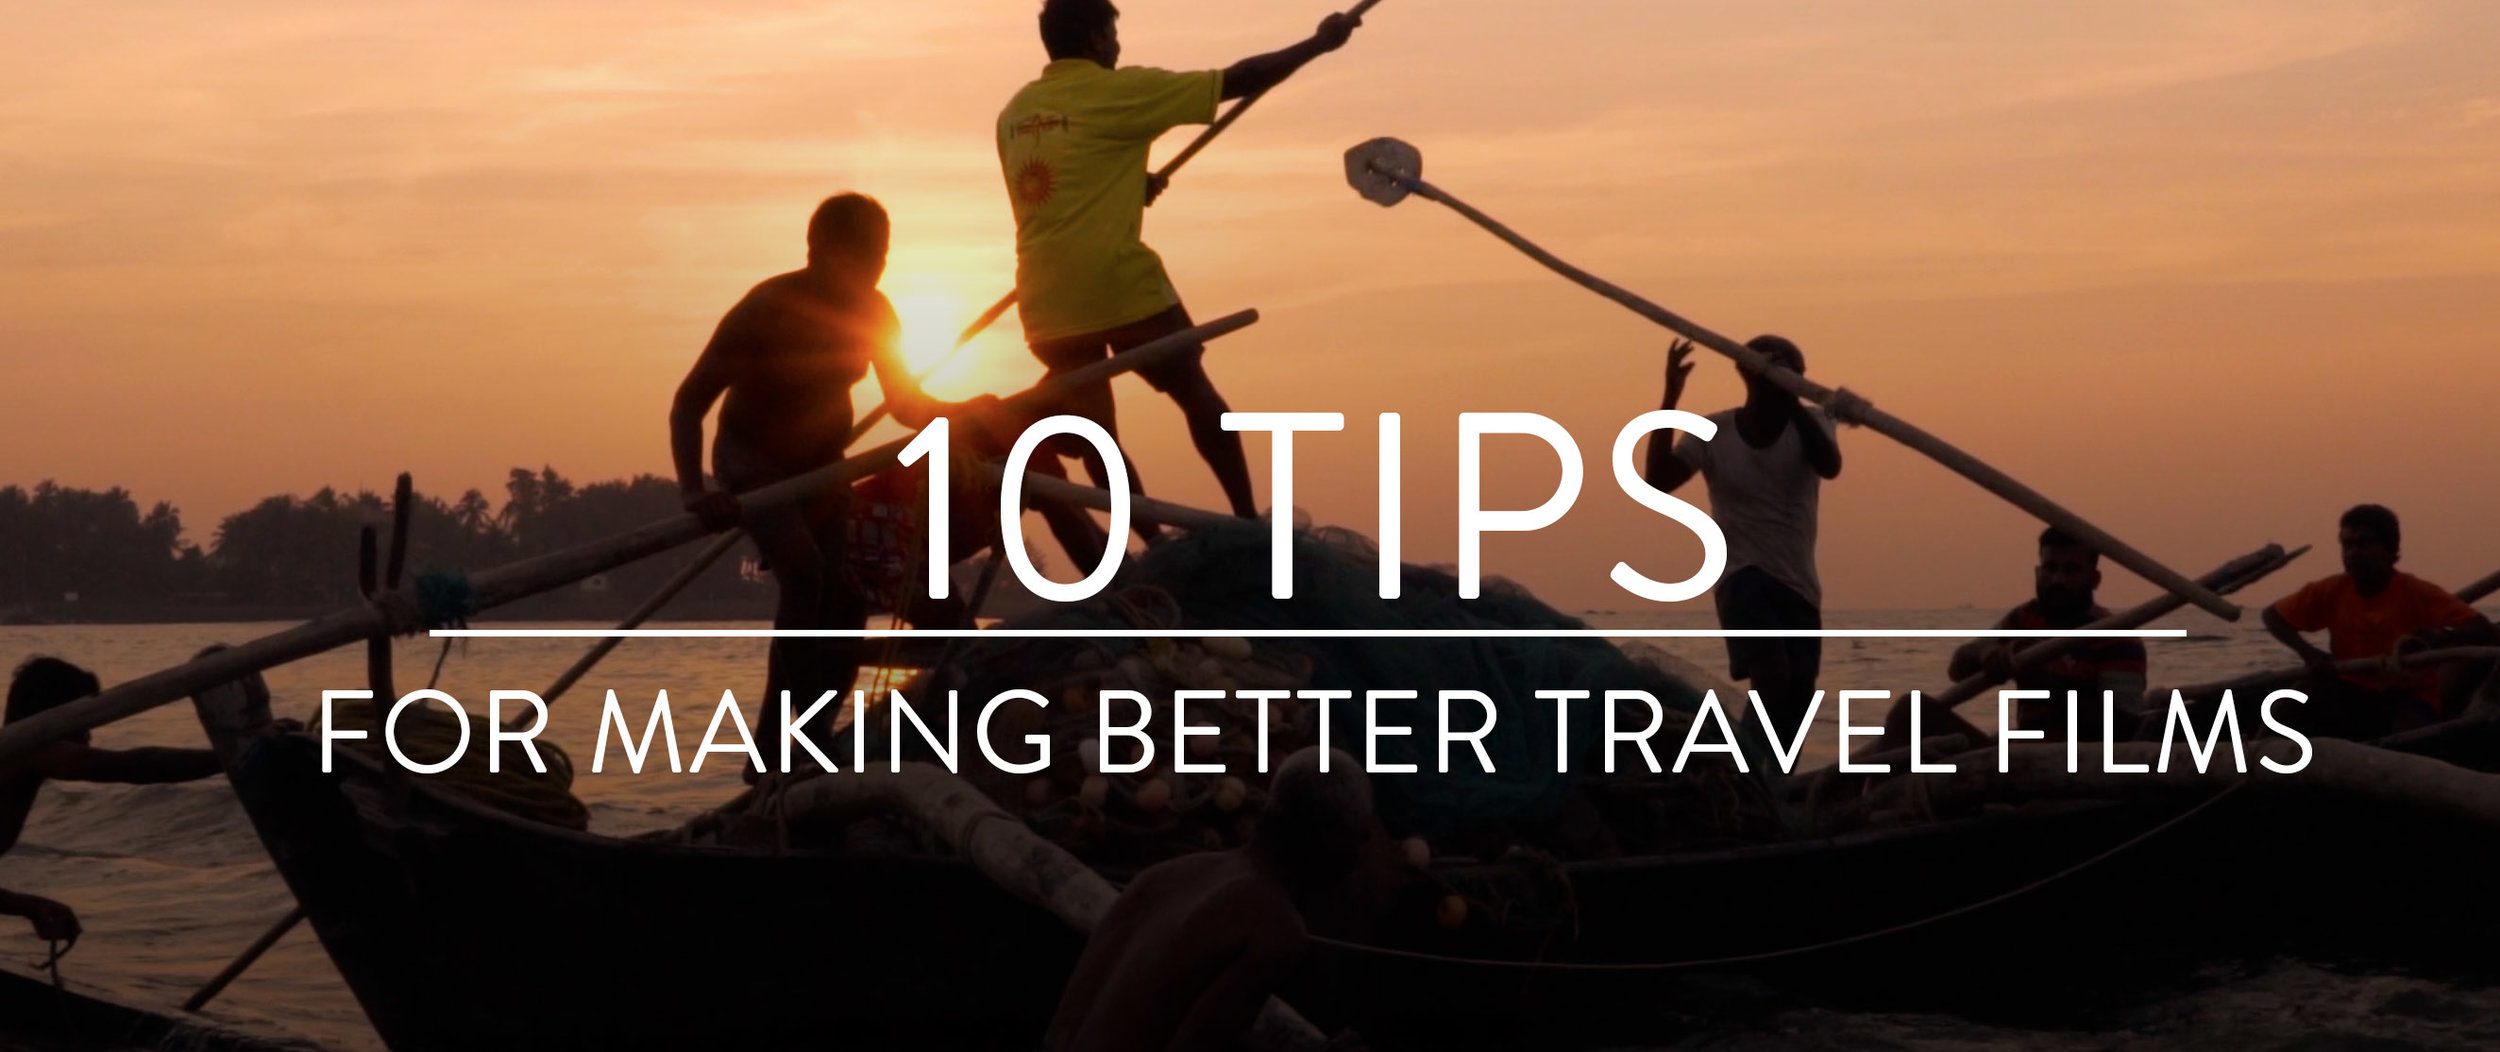 10 TIPS FOR MAKING BETTER TRAVEL FILMS